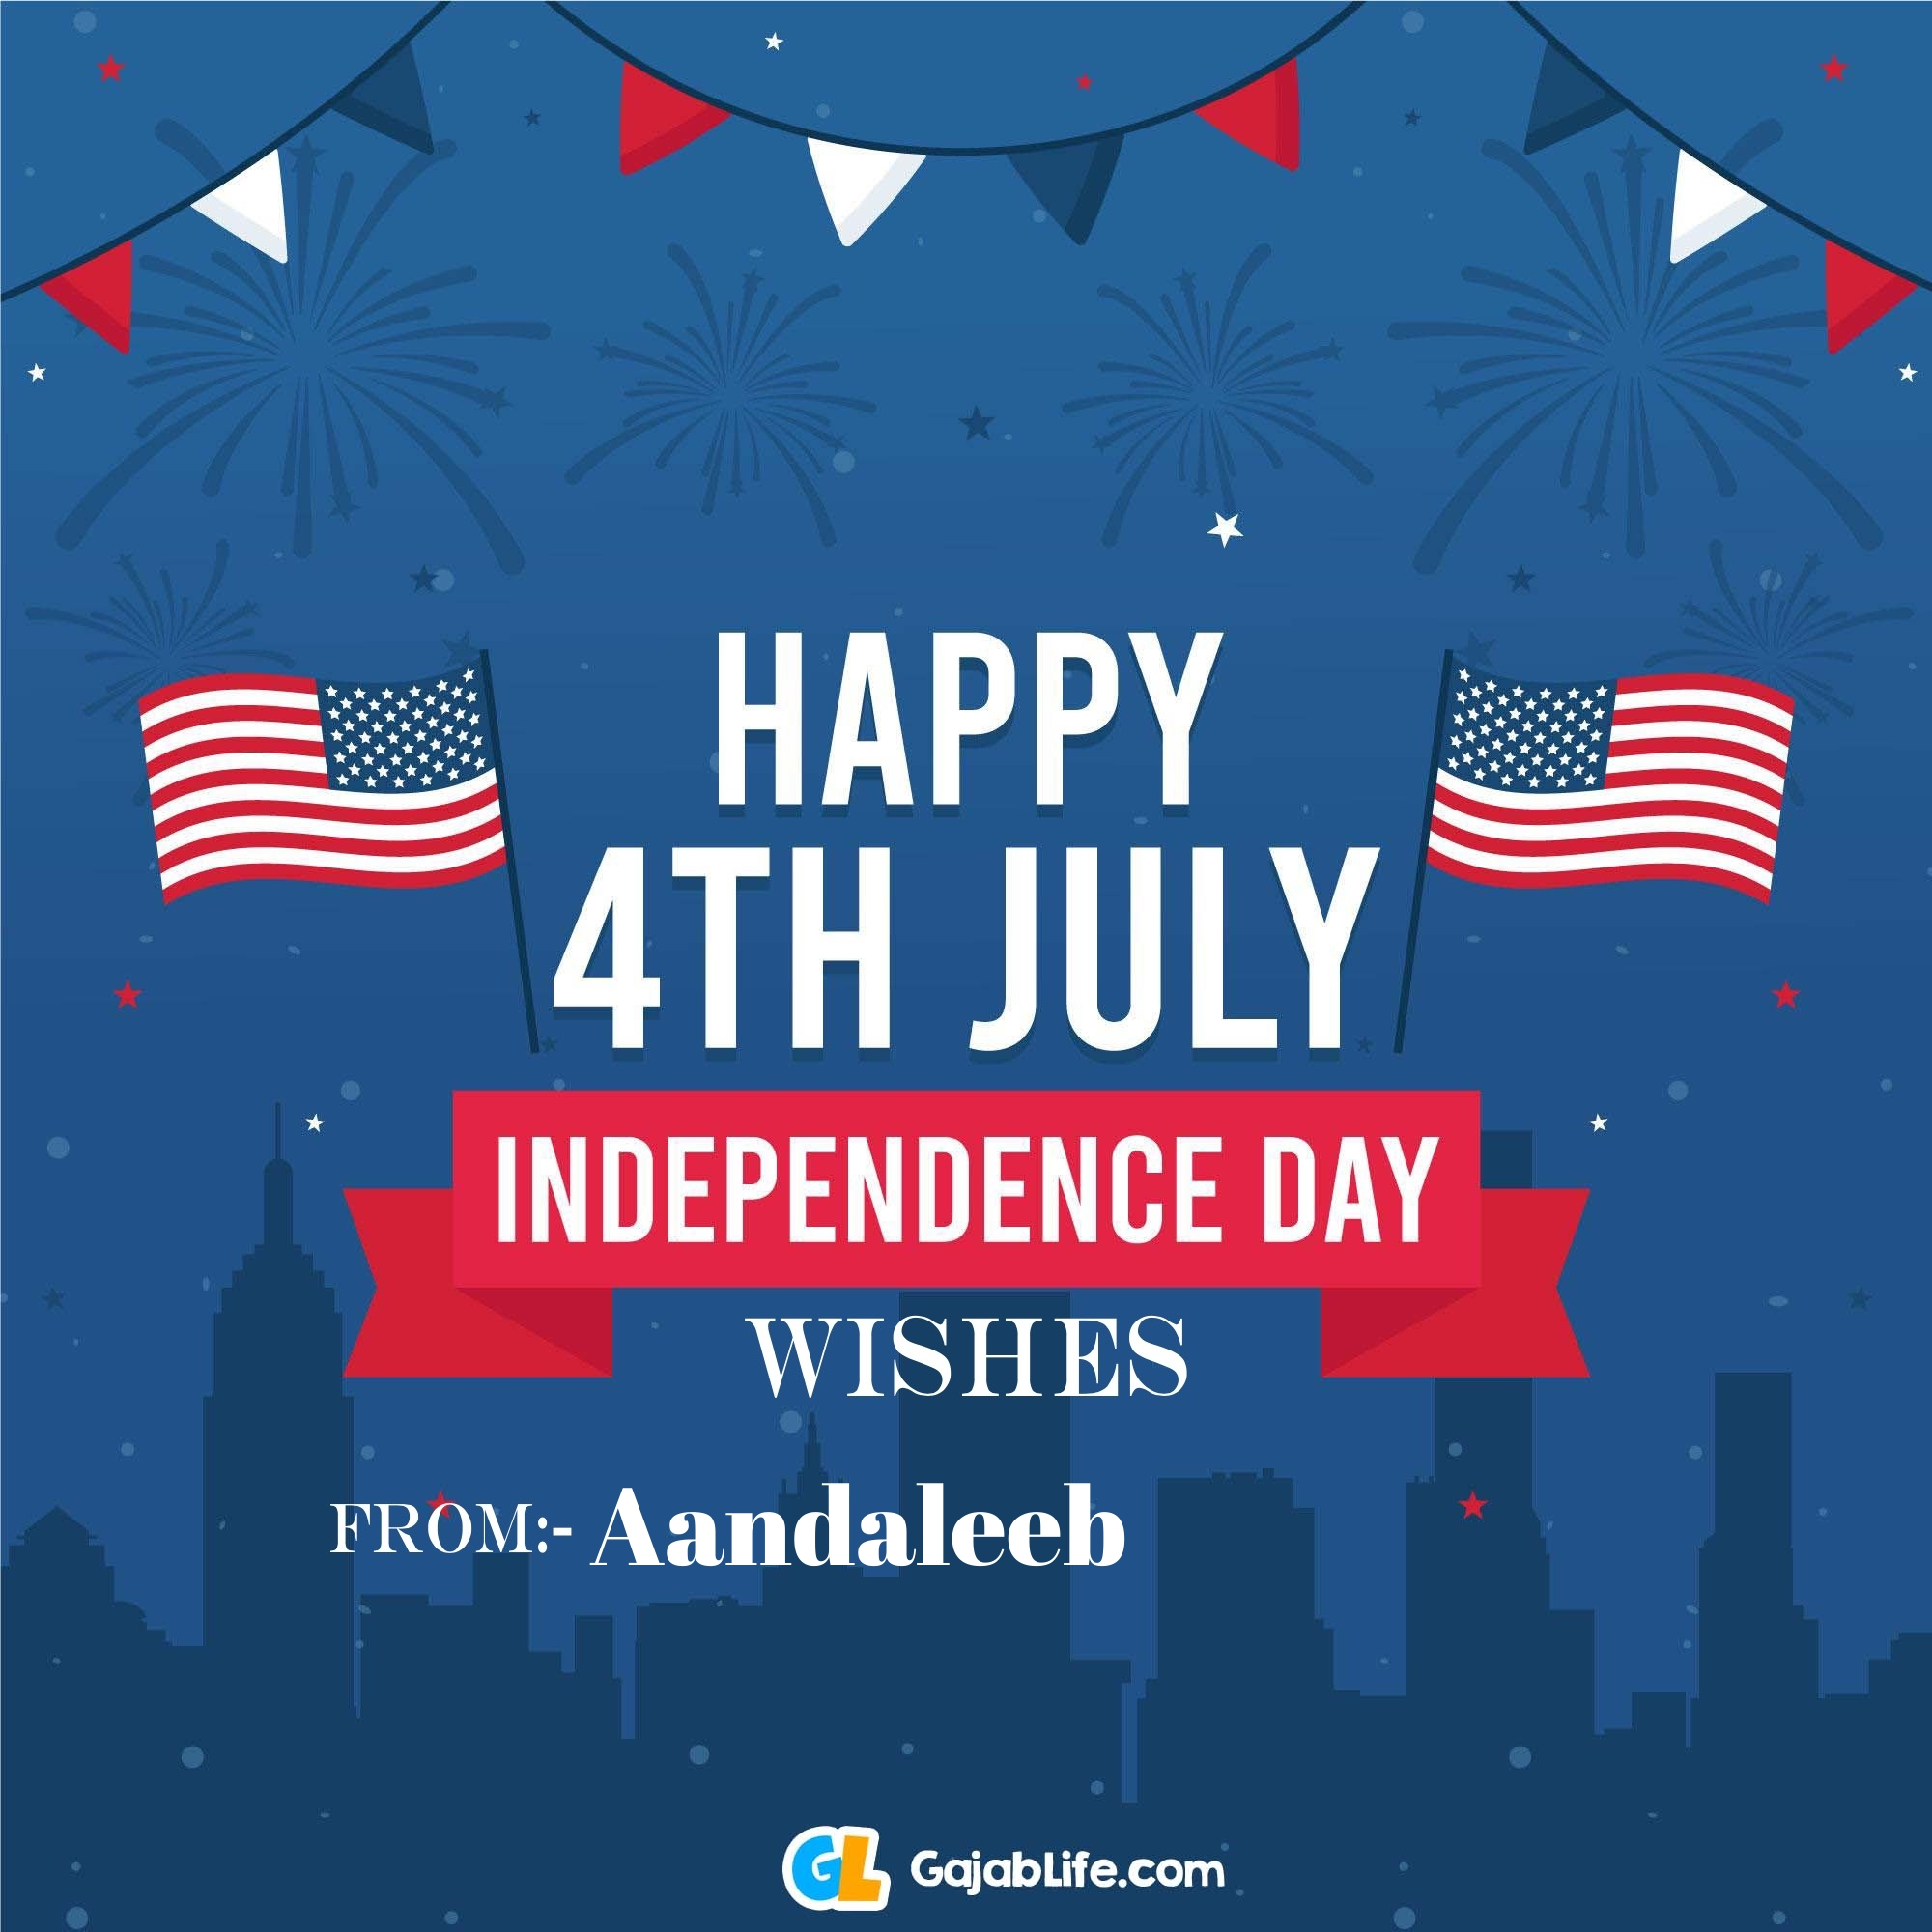 Aandaleeb happy independence day united states of america images